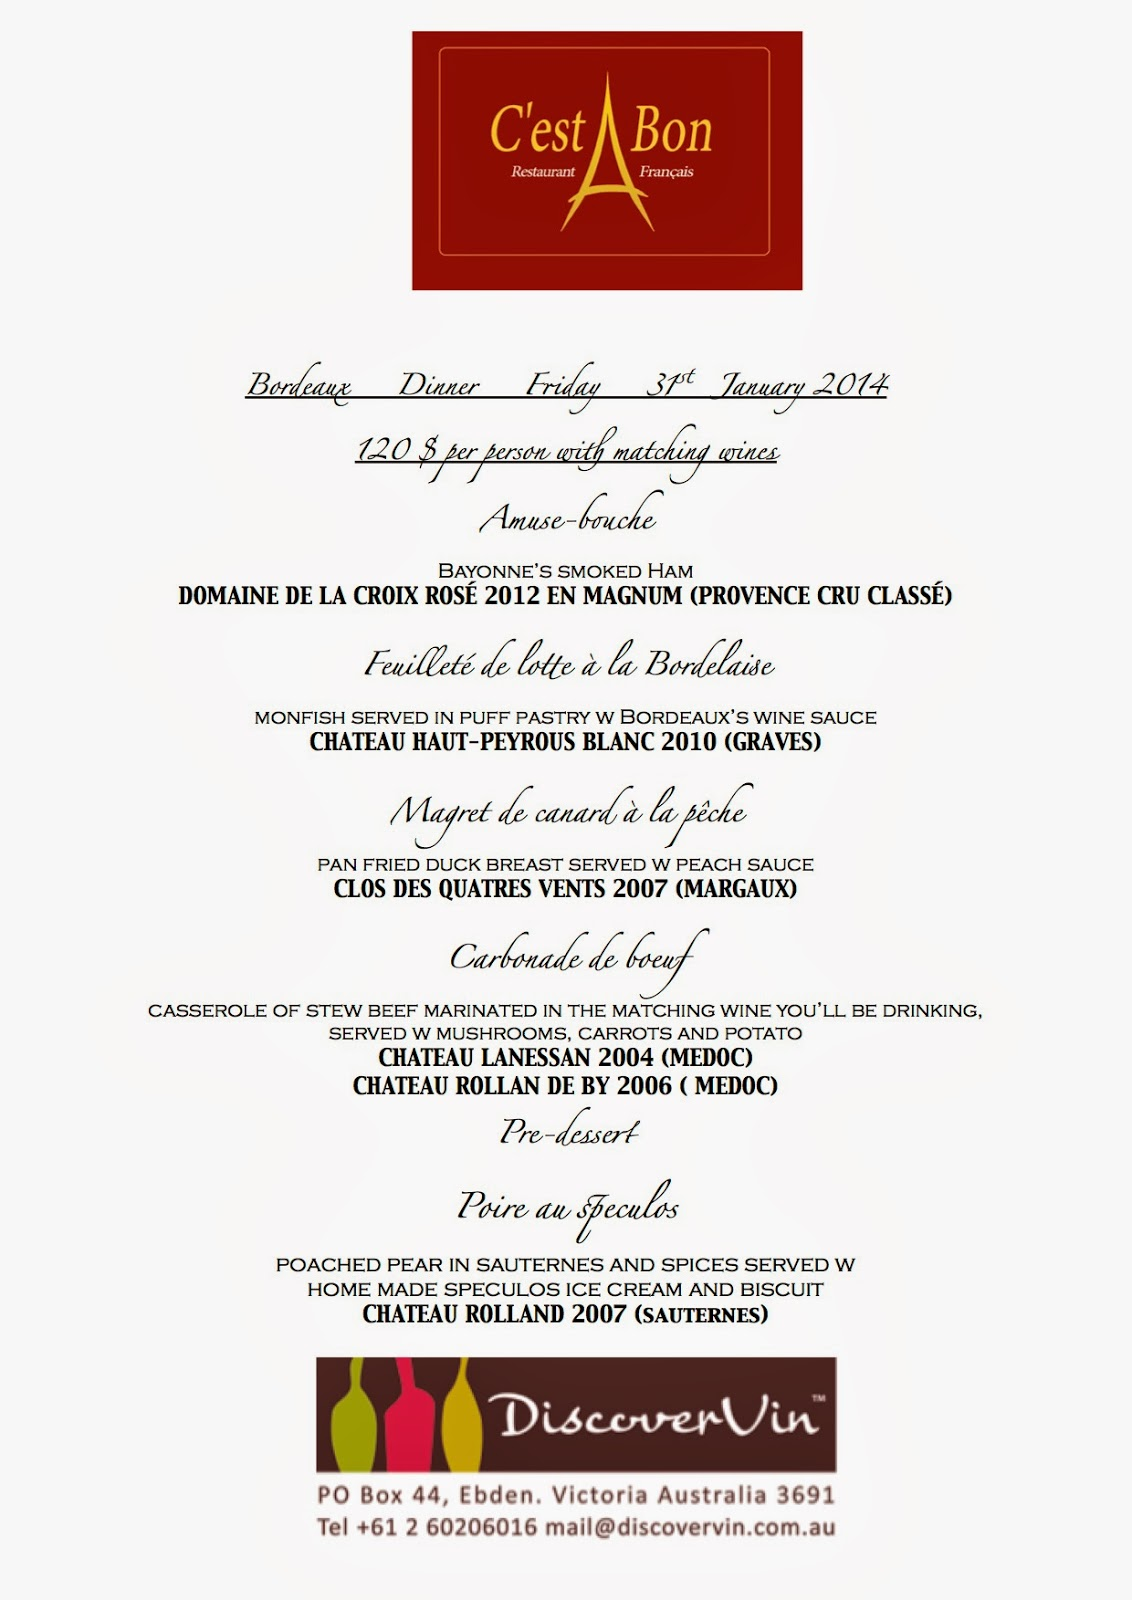 menu c'est bon brisbane bordeaux dinner January 31, 2014